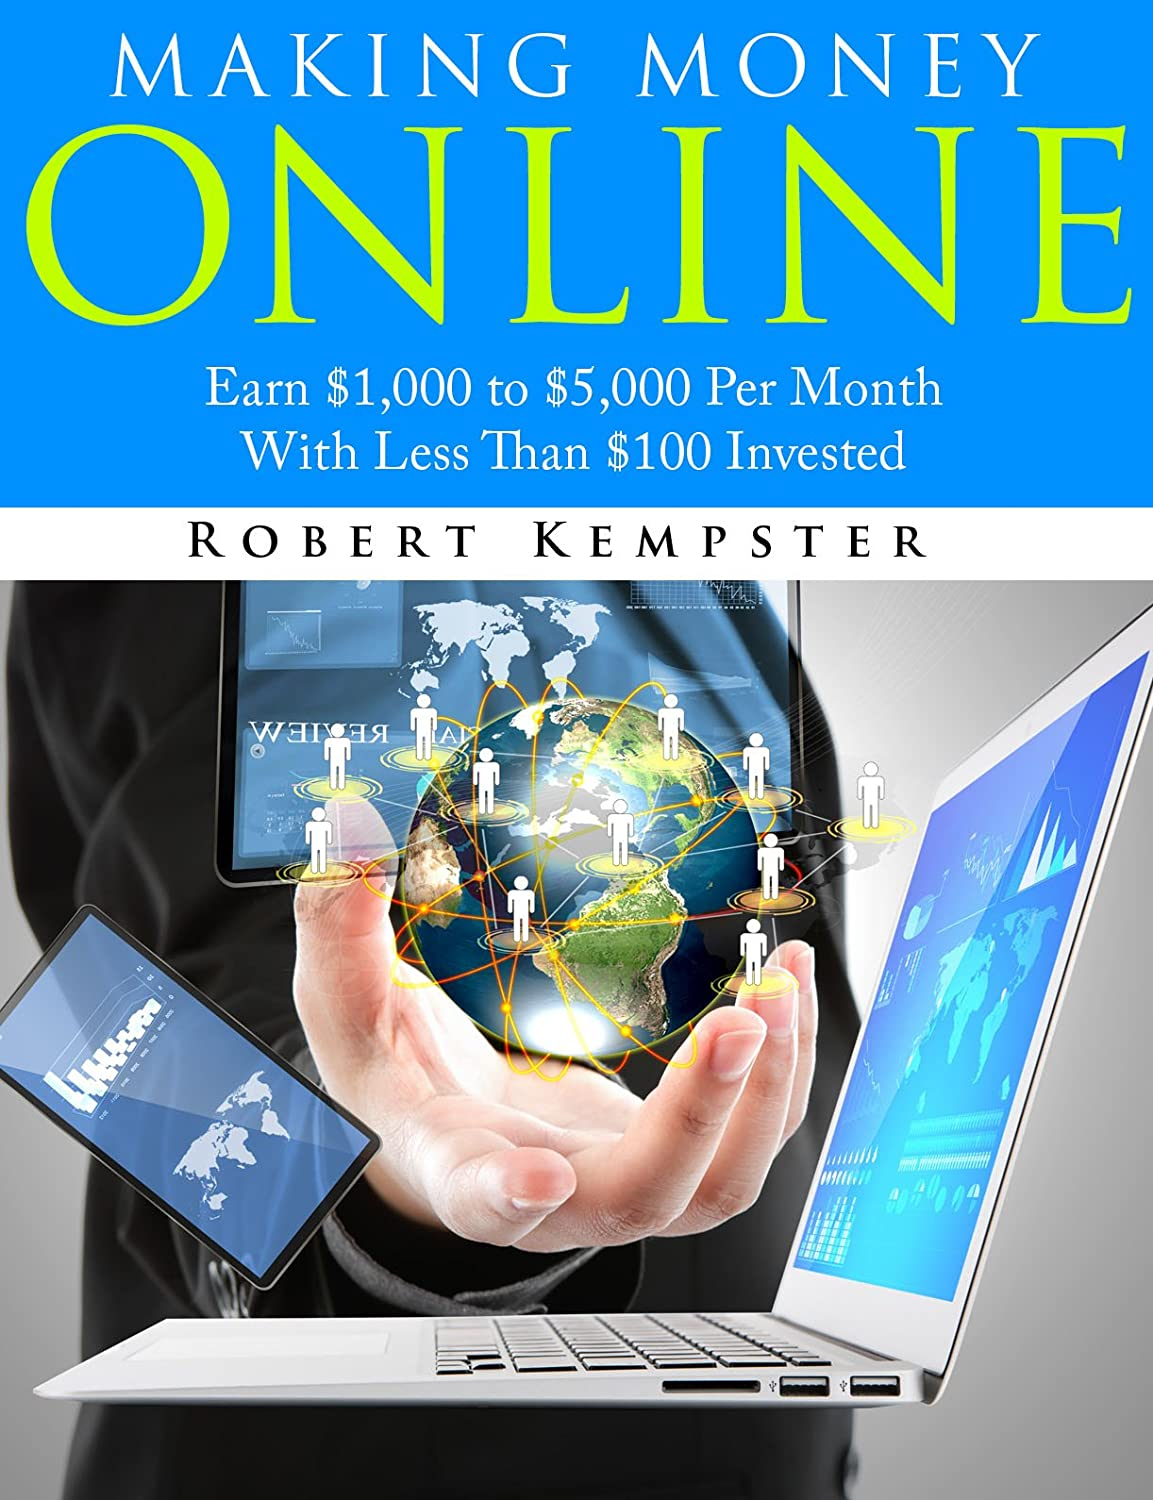 http://www.amazon.com/Making-Money-Online-Month-Invested-ebook/dp/B00R2A42E6/ref=sr_1_3?s=digital-text&ie=UTF8&qid=1418708086&sr=1-3&keywords=making+money+online&pebp=1418708111601